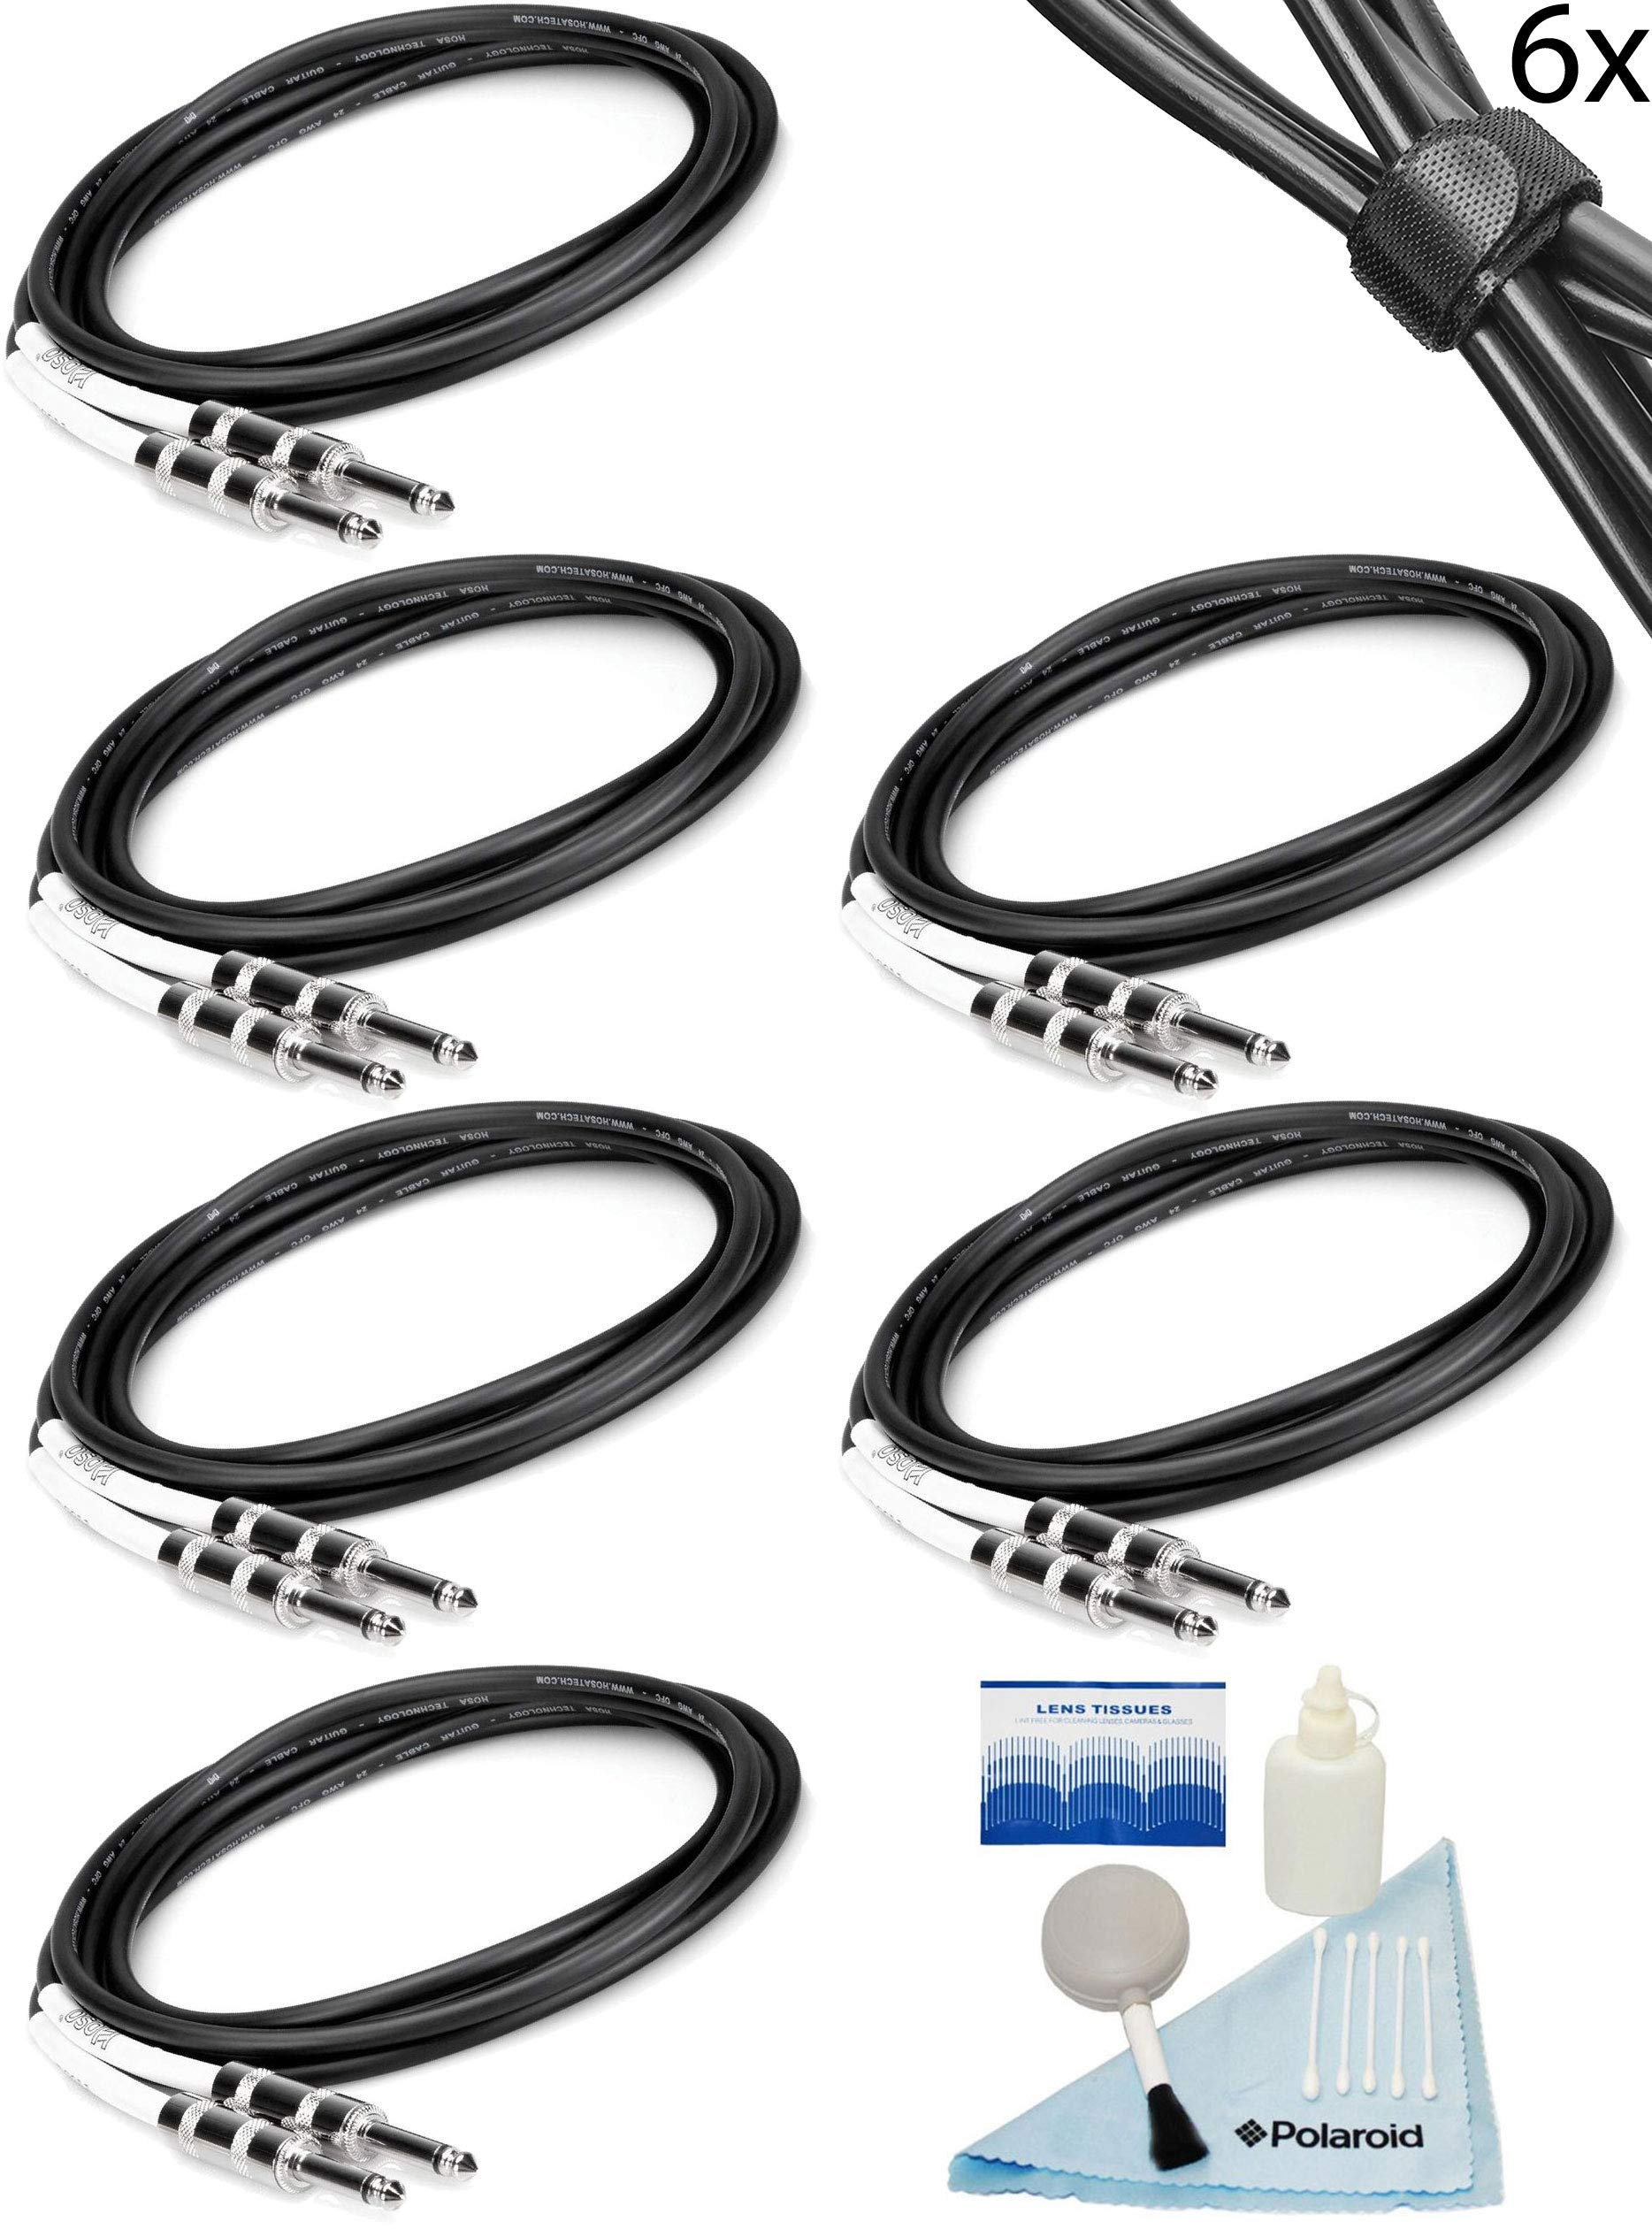 Hosa 6 Pack 20' Performance Instrument Cables 1/4 Straight-to-Straight for Electric Guitar, Bass Guitar, Electric Mandolin, Keyboard, Pro Audio, Headphones, Microphone w/Bonus Fastening Cable Ties